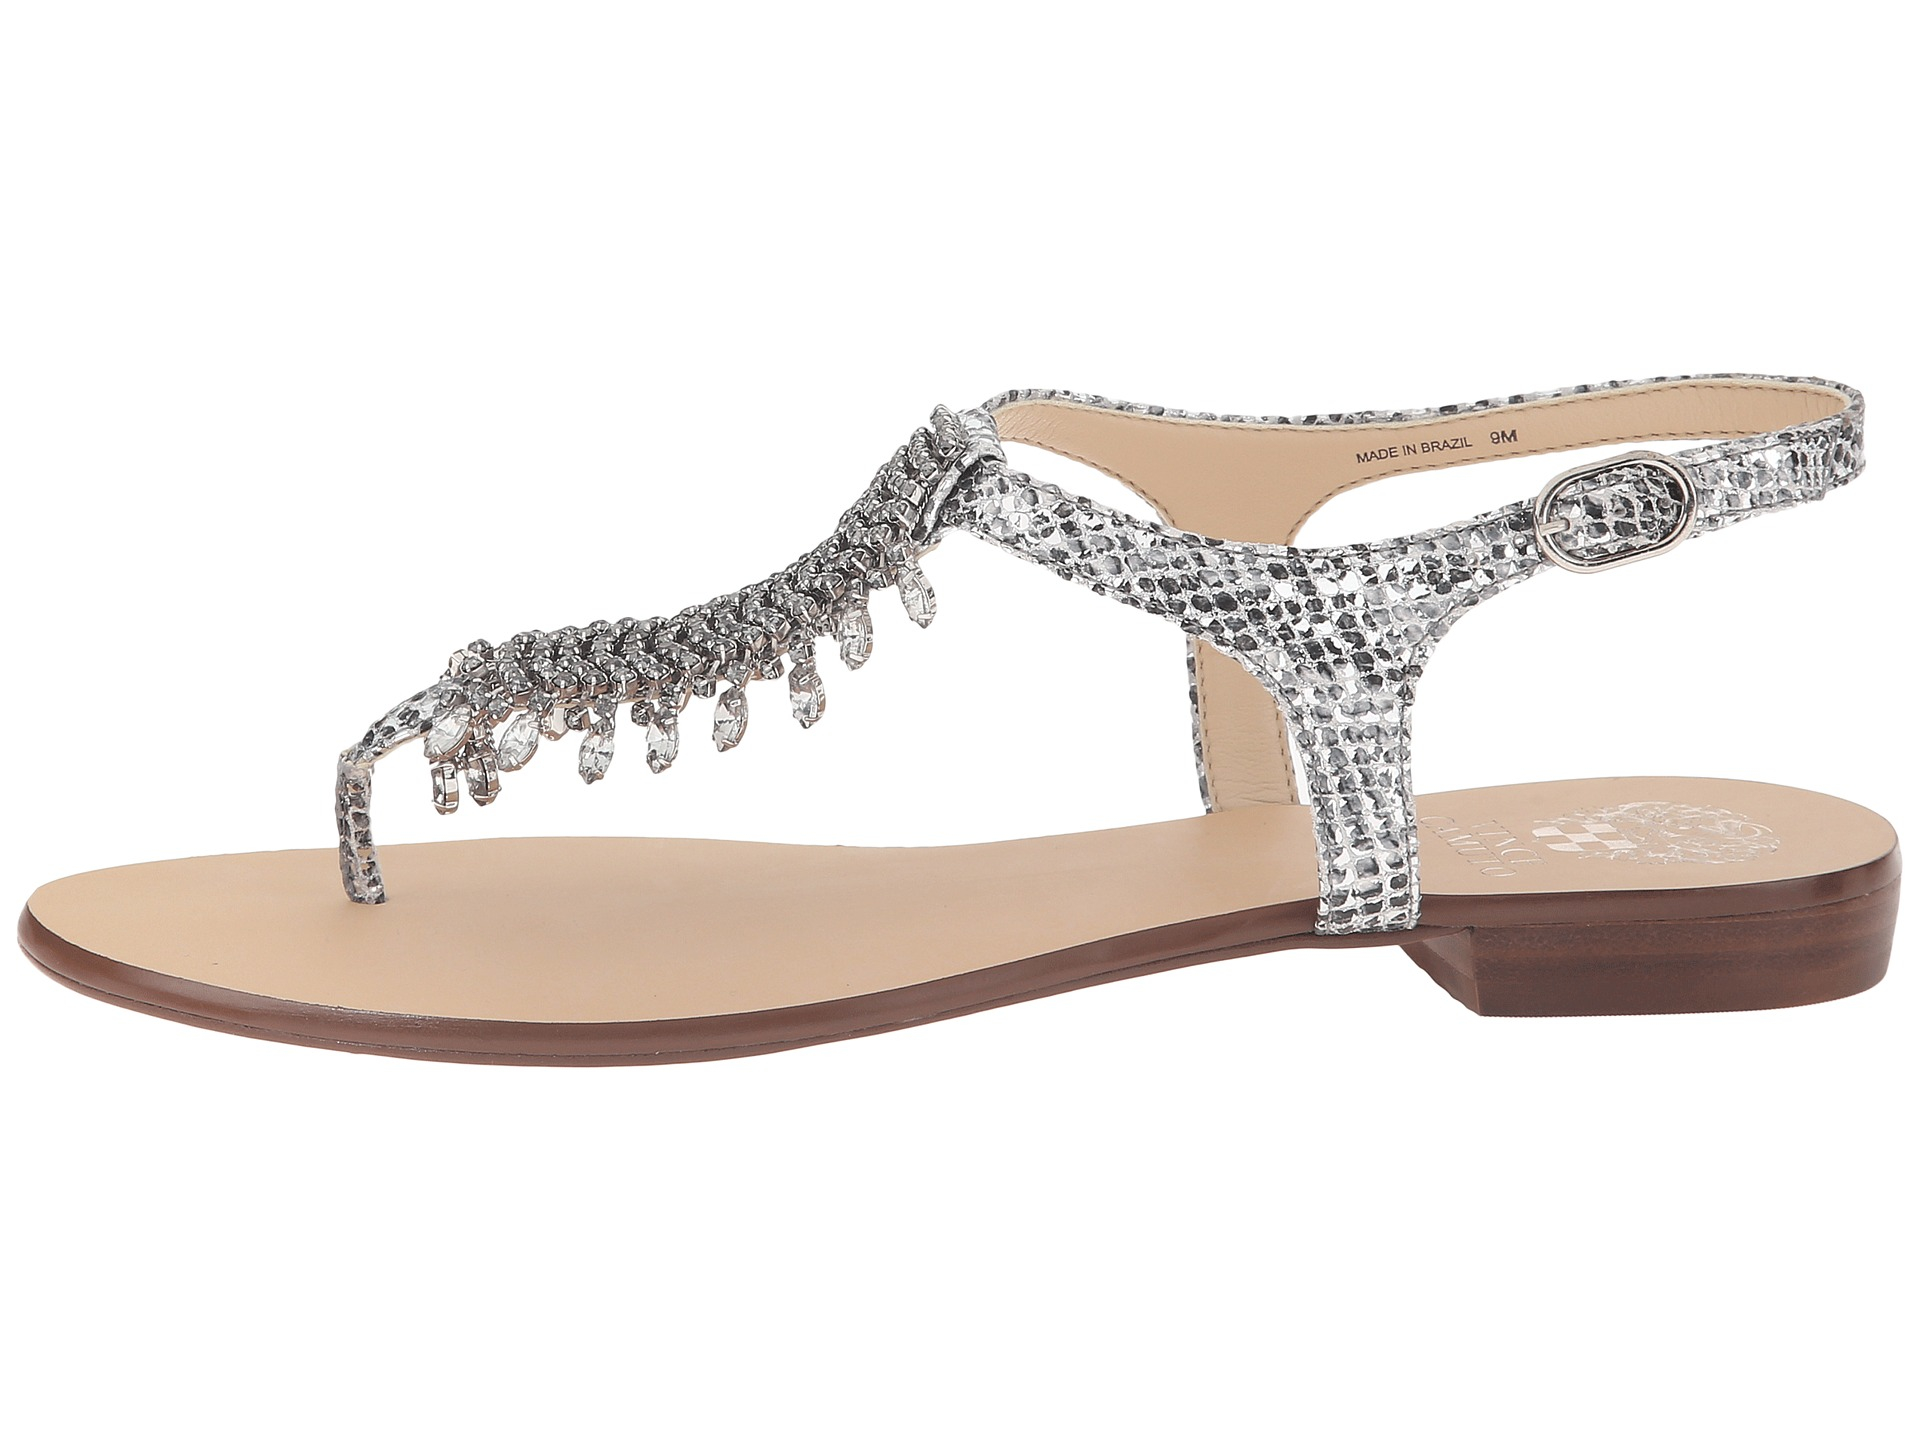 Vince Camuto Jachai Jeweled T Strap Sandals In Metallic Lyst